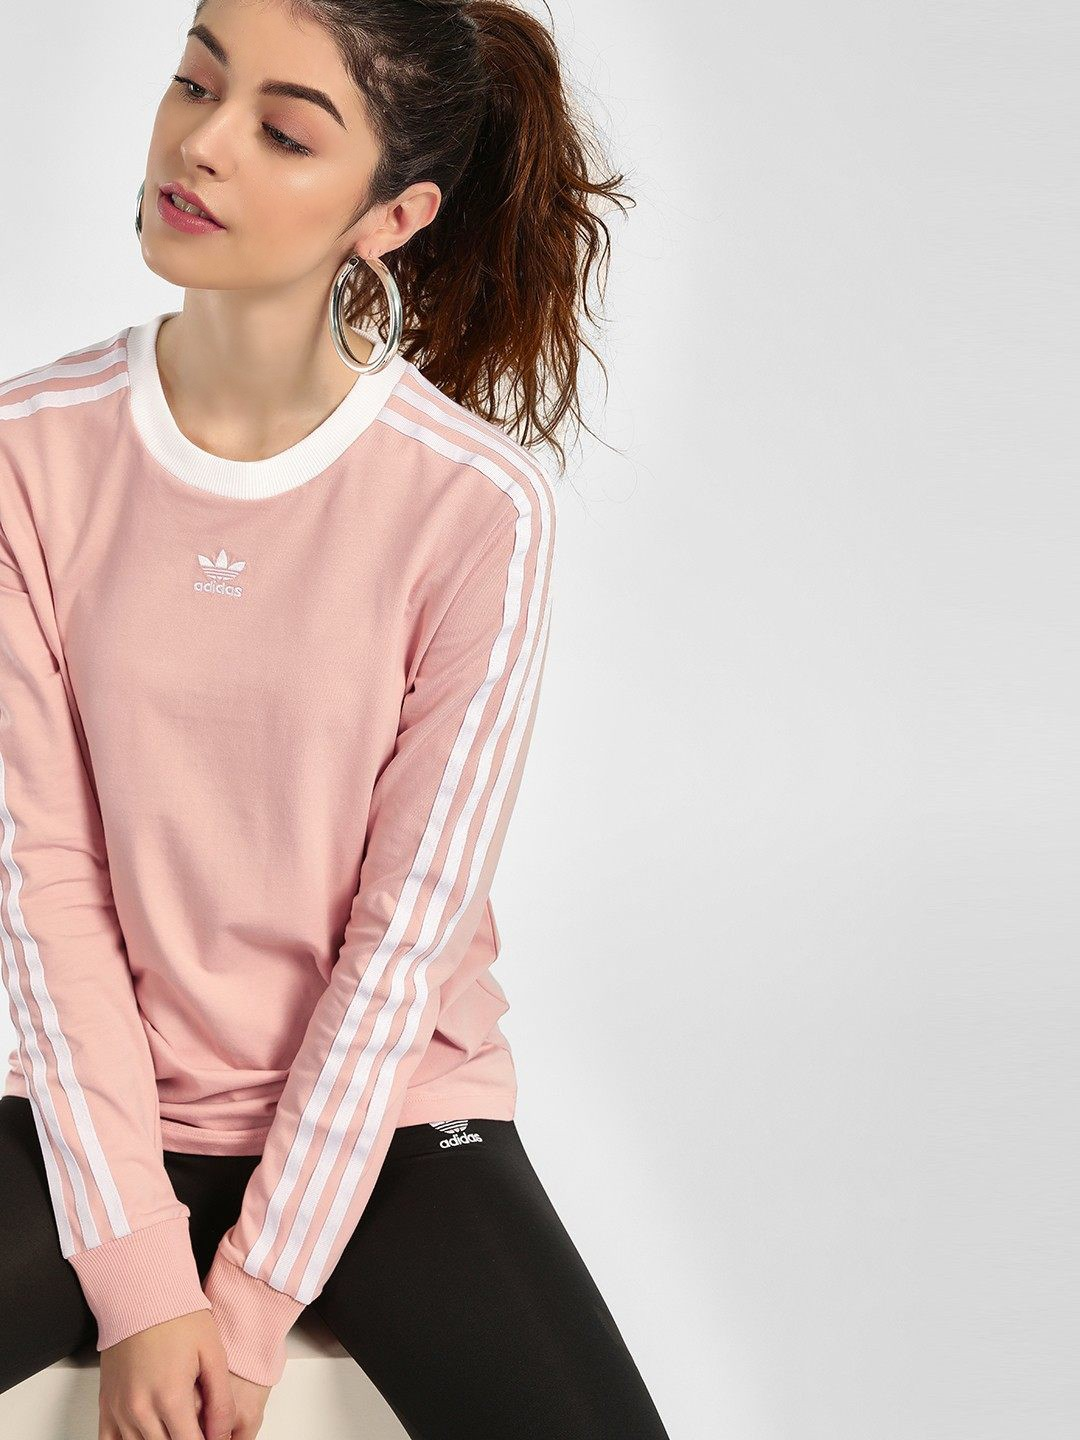 Adidas Originals Pink 3 Stripes T-Shirt 1